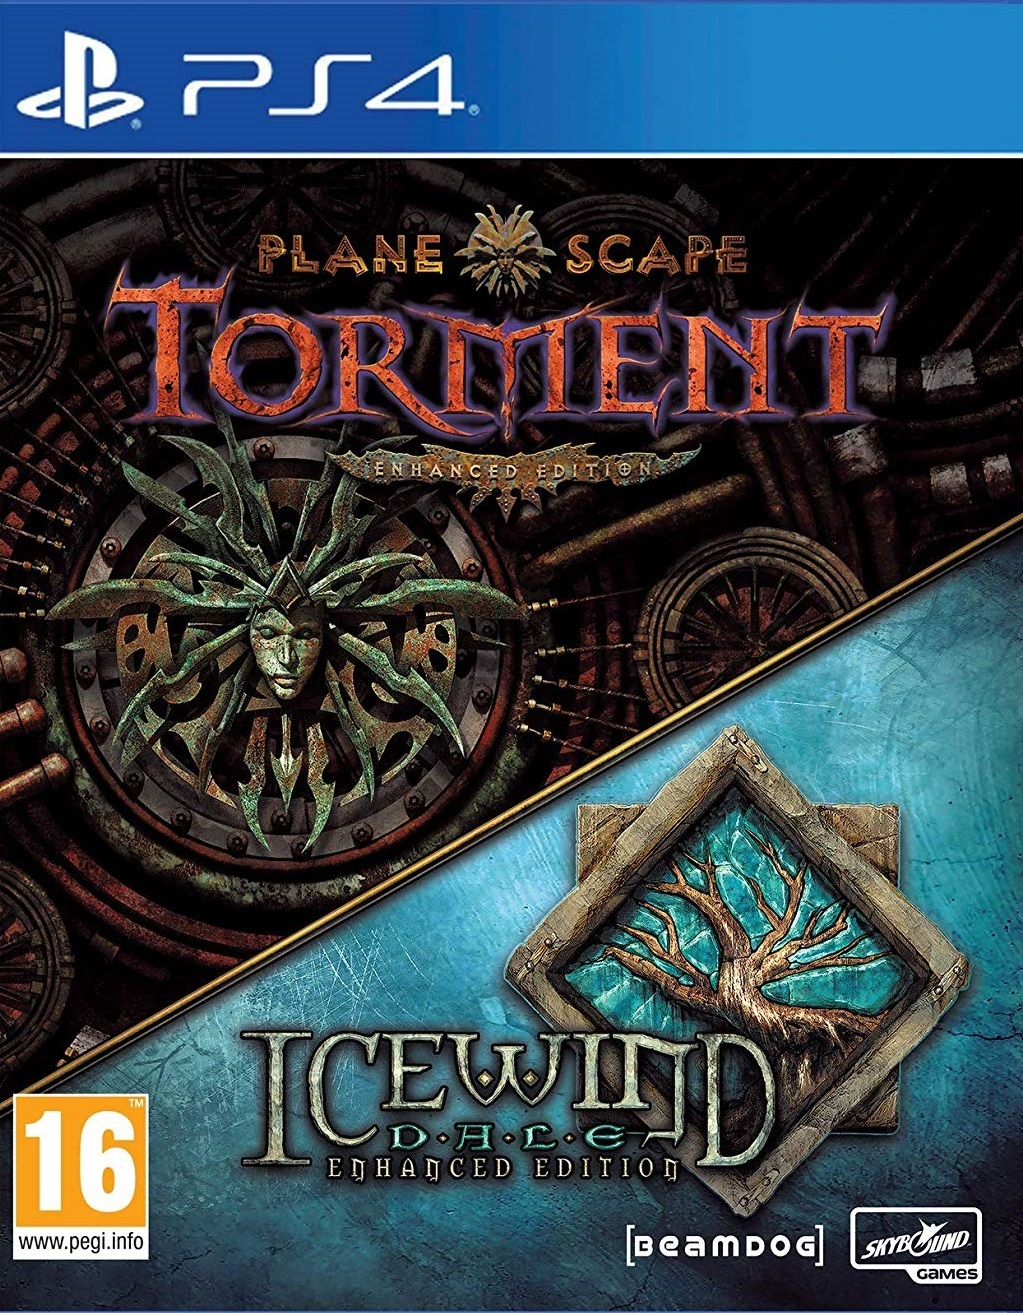 Planescape: Torment & Icewind Dale Enhanced Edition for PS4 image